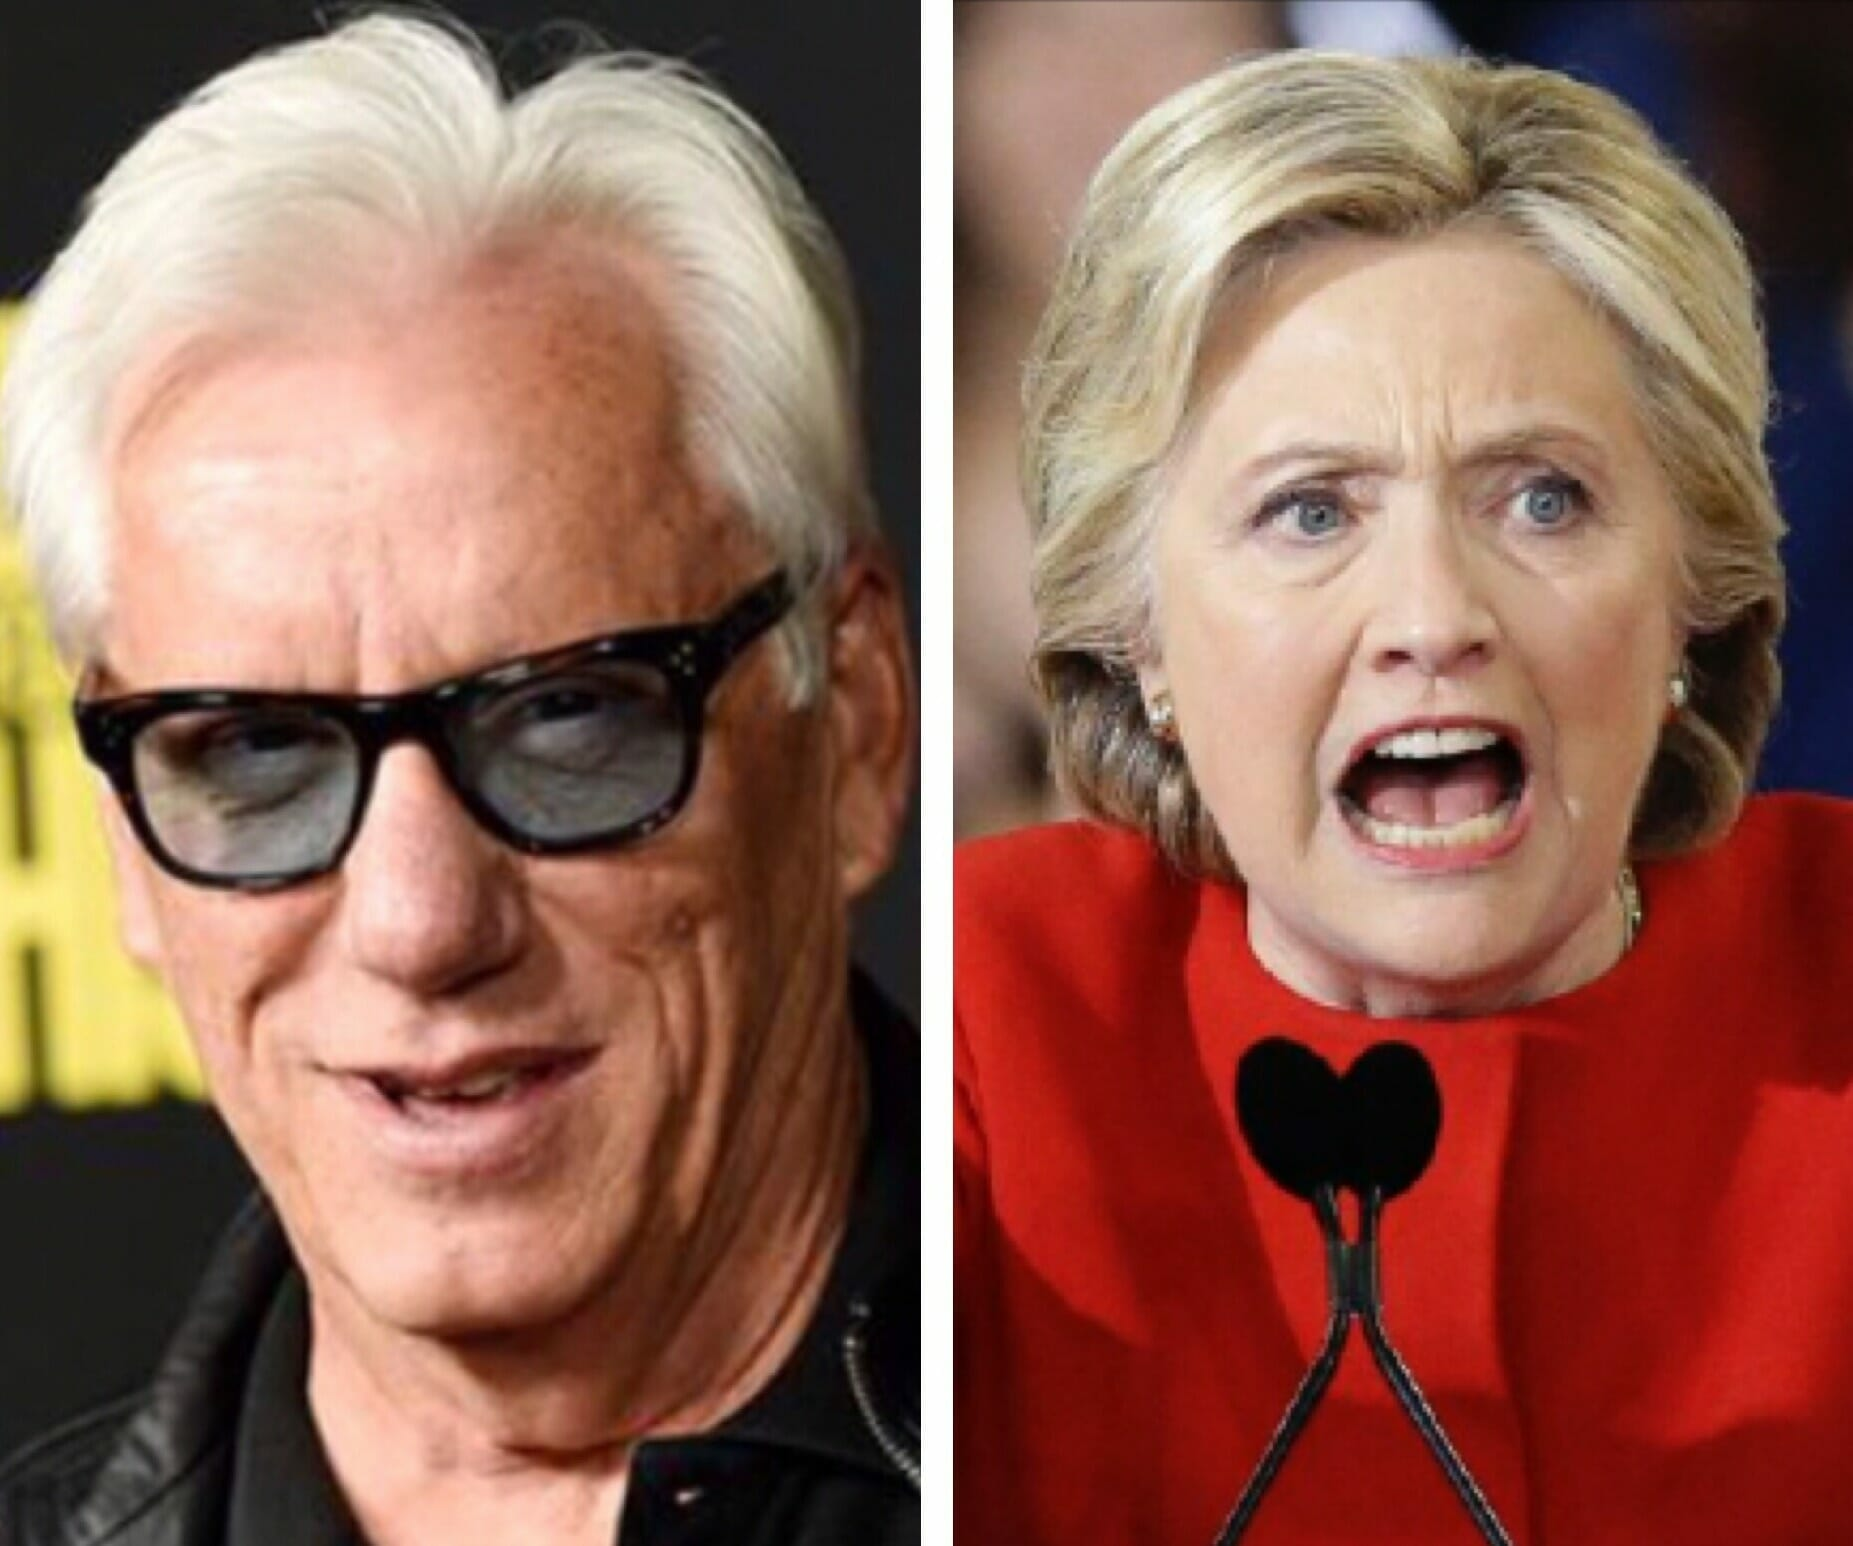 James Woods Ignites Twitter After He Drops a MOAB on Hillary Clinton